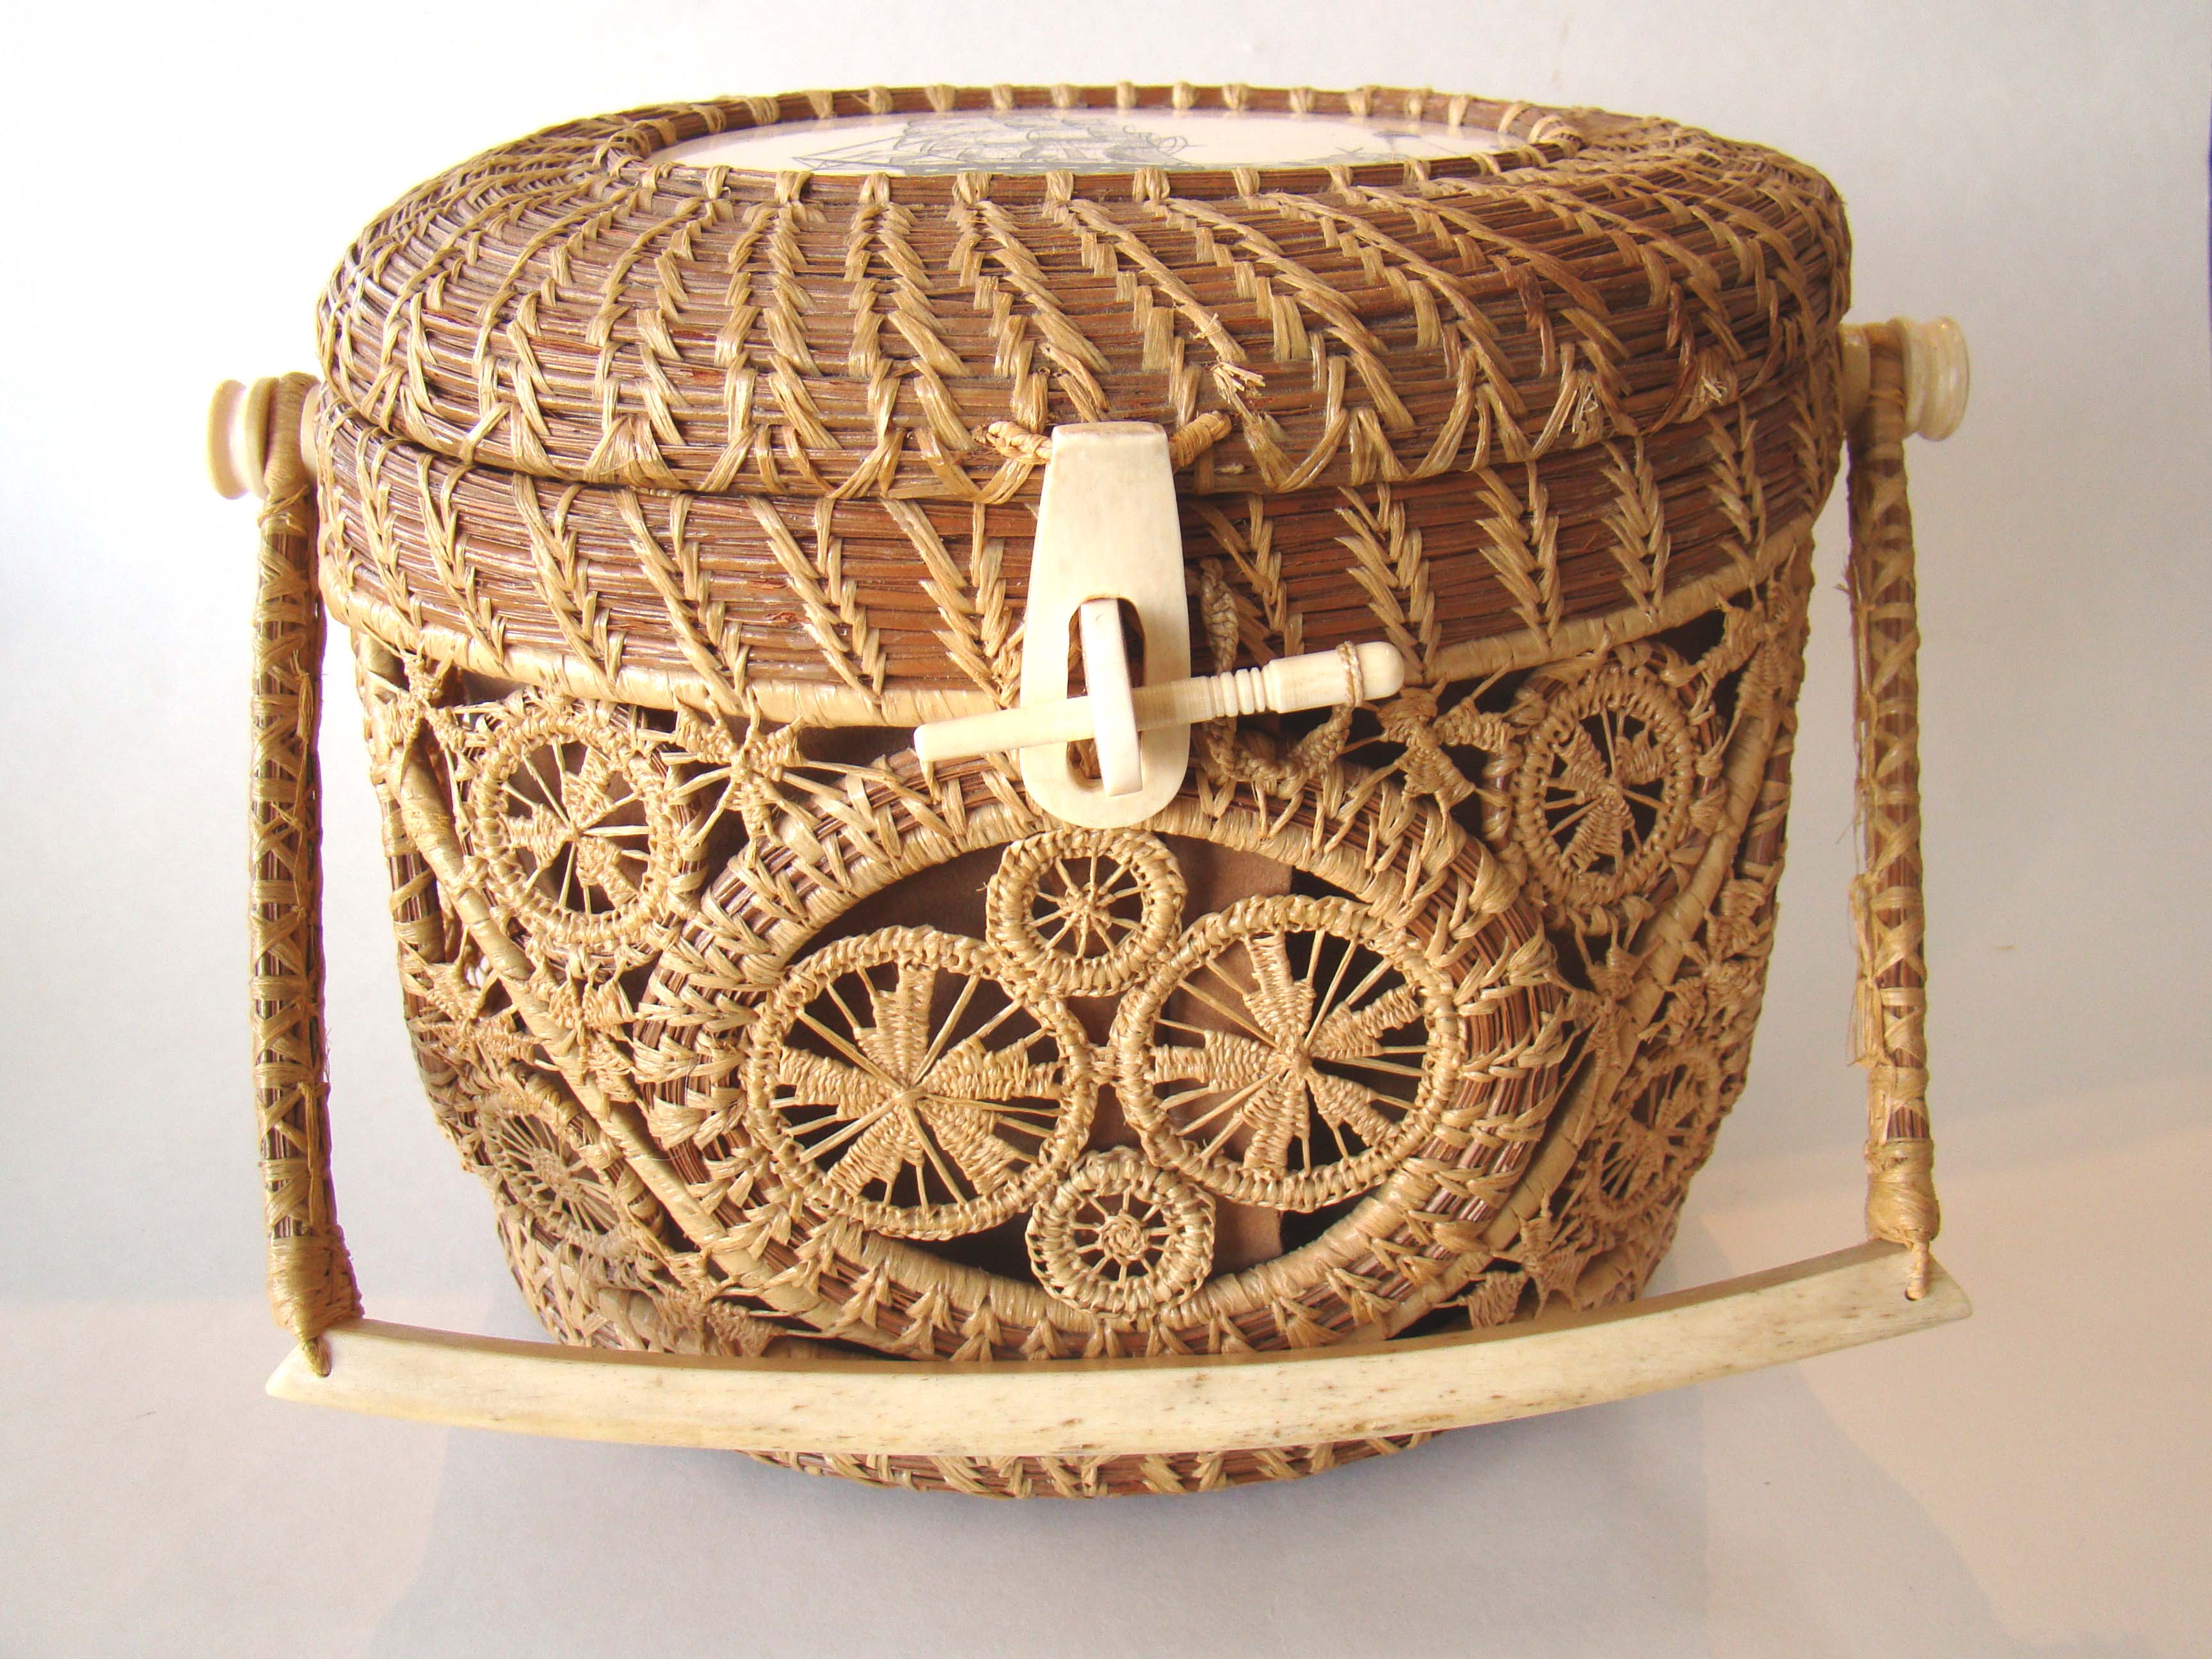 click to view detailed description of A famous Mattapoisett basket made by the original creator of the baskets Gladys Ellis circa 1970